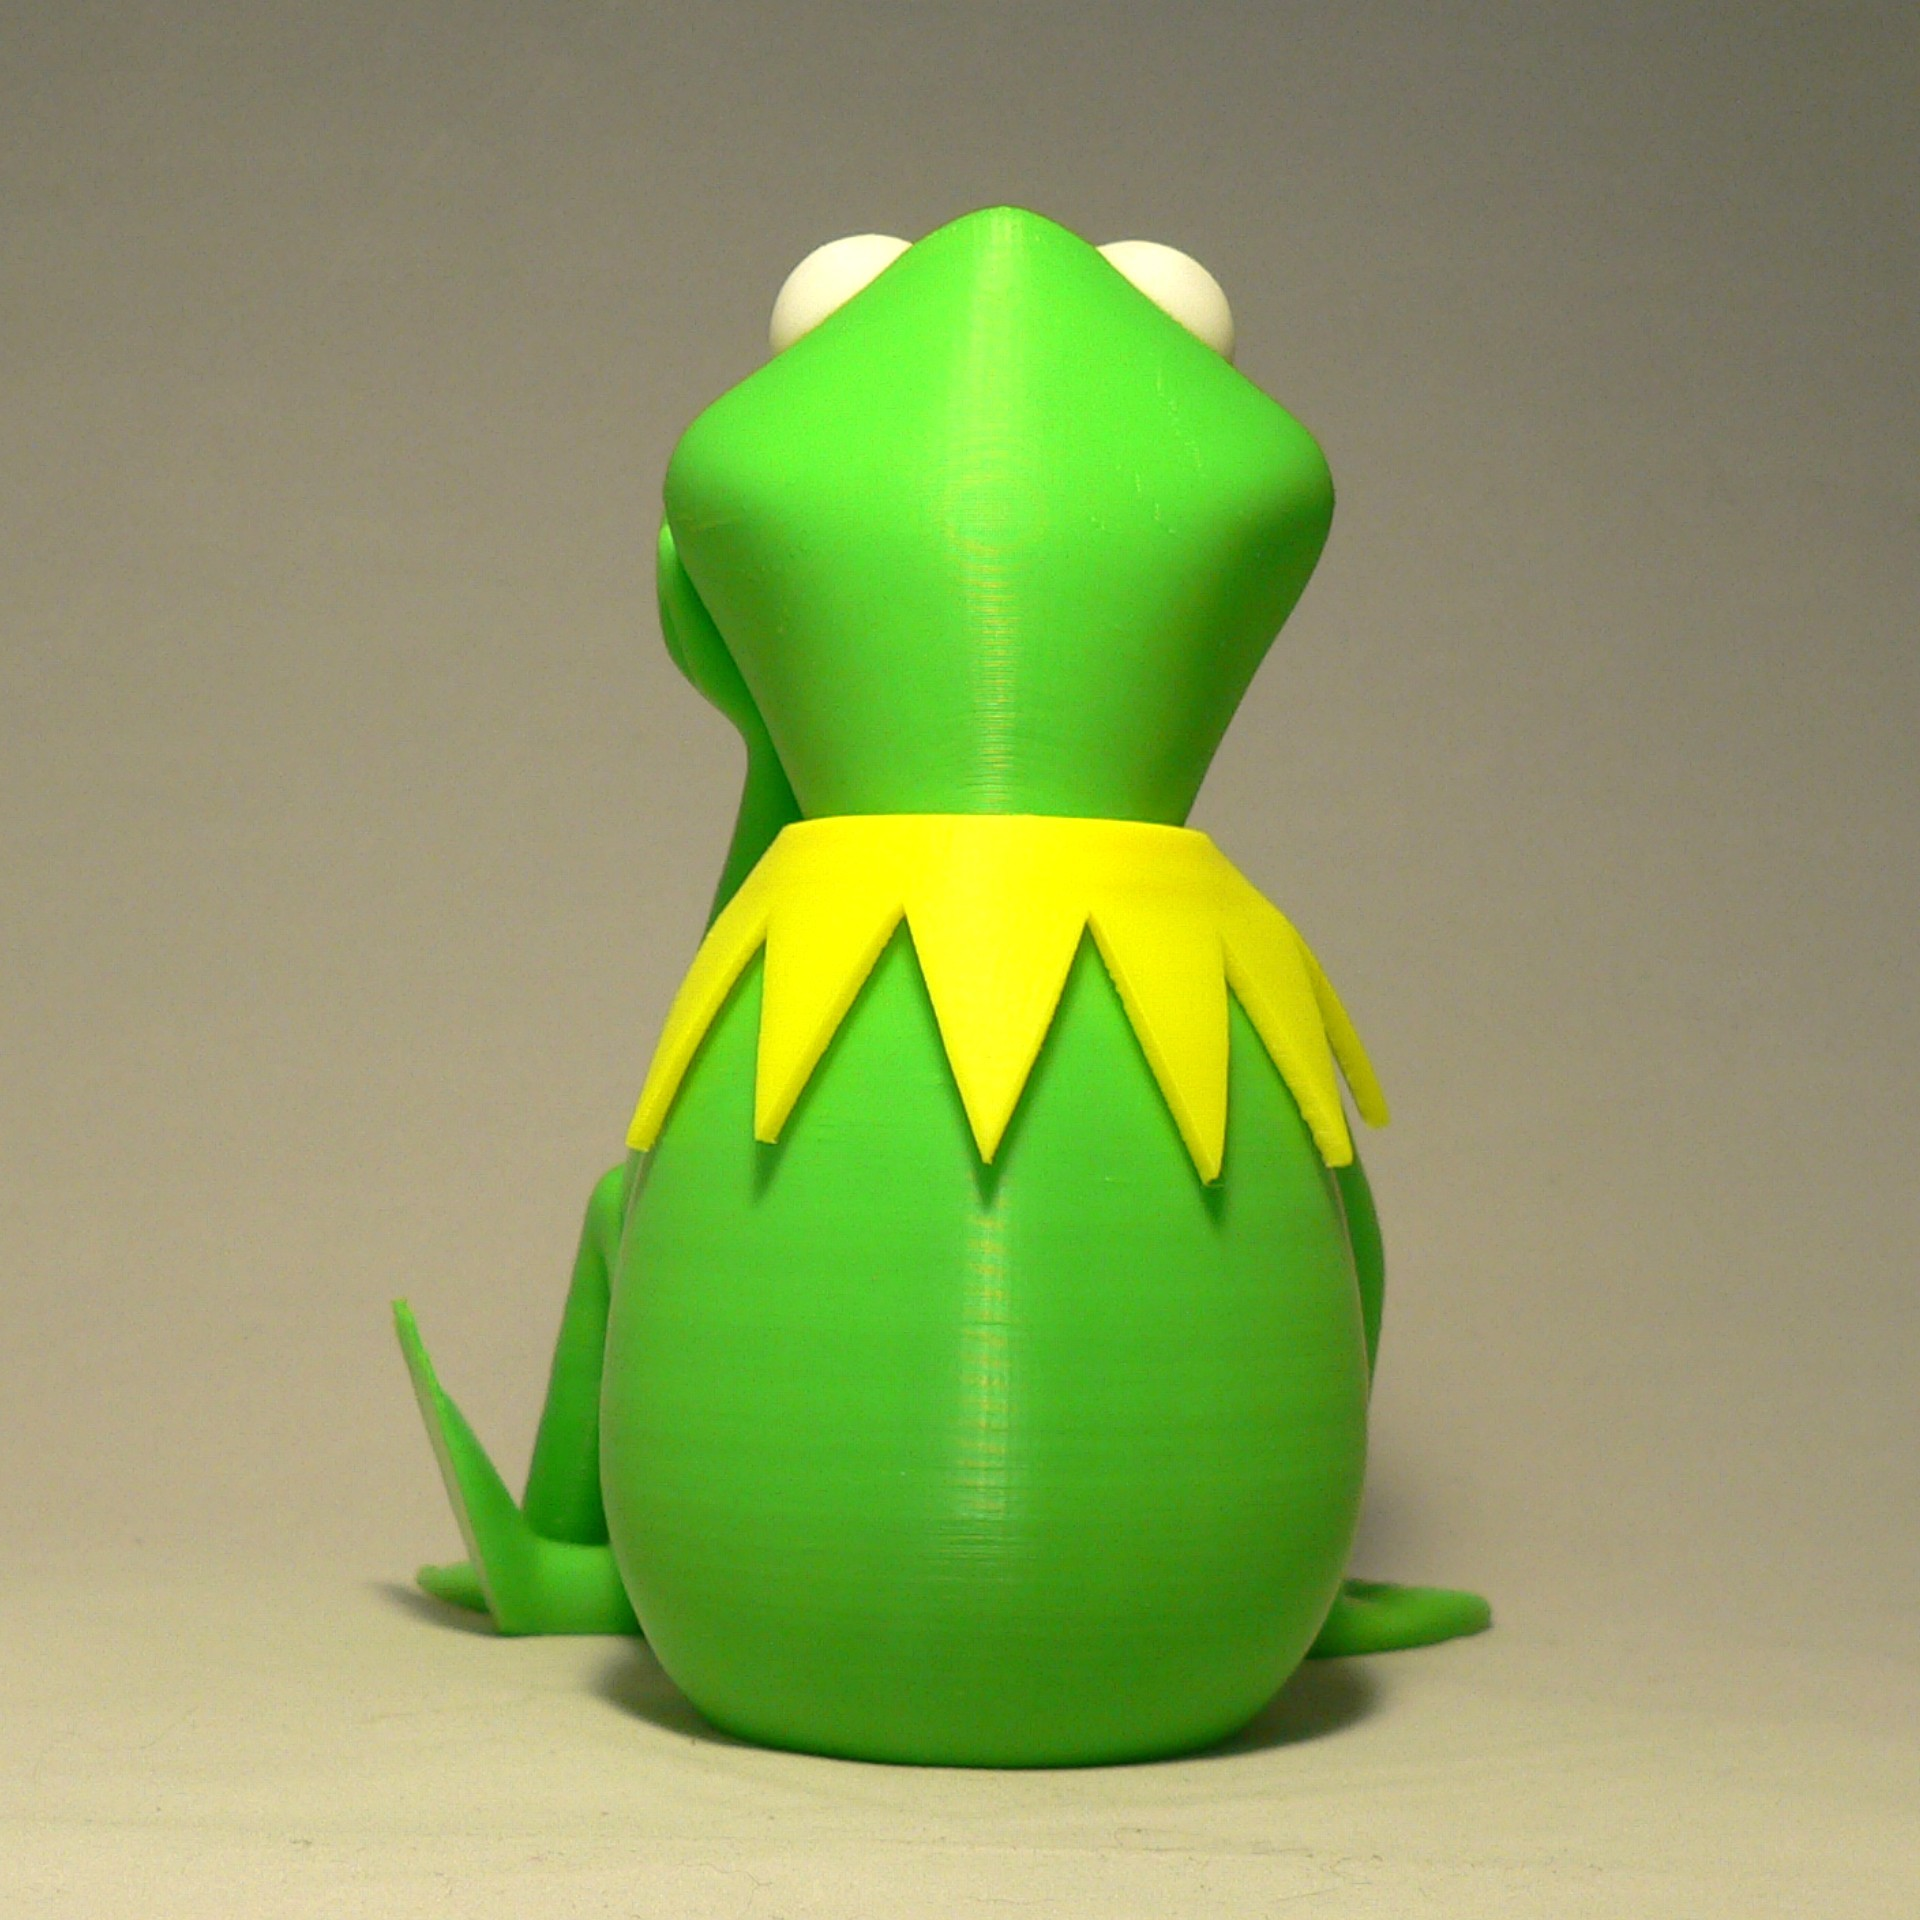 kermit back1.jpg Download free STL file Kermit the Frog • 3D printable model, reddadsteve